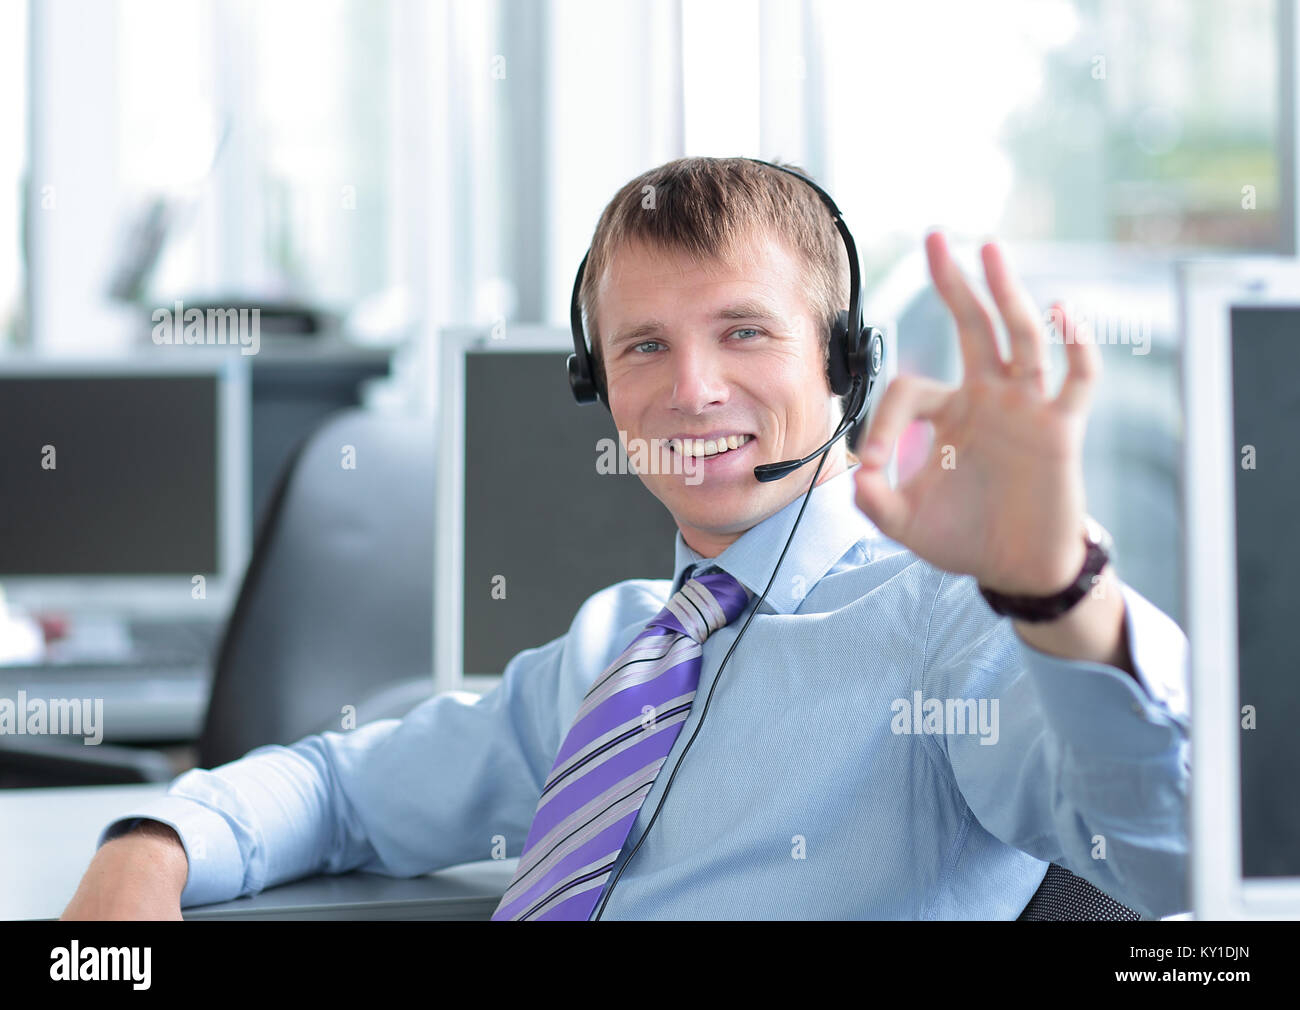 Happy young business man in headset working on computer. Stock Photo